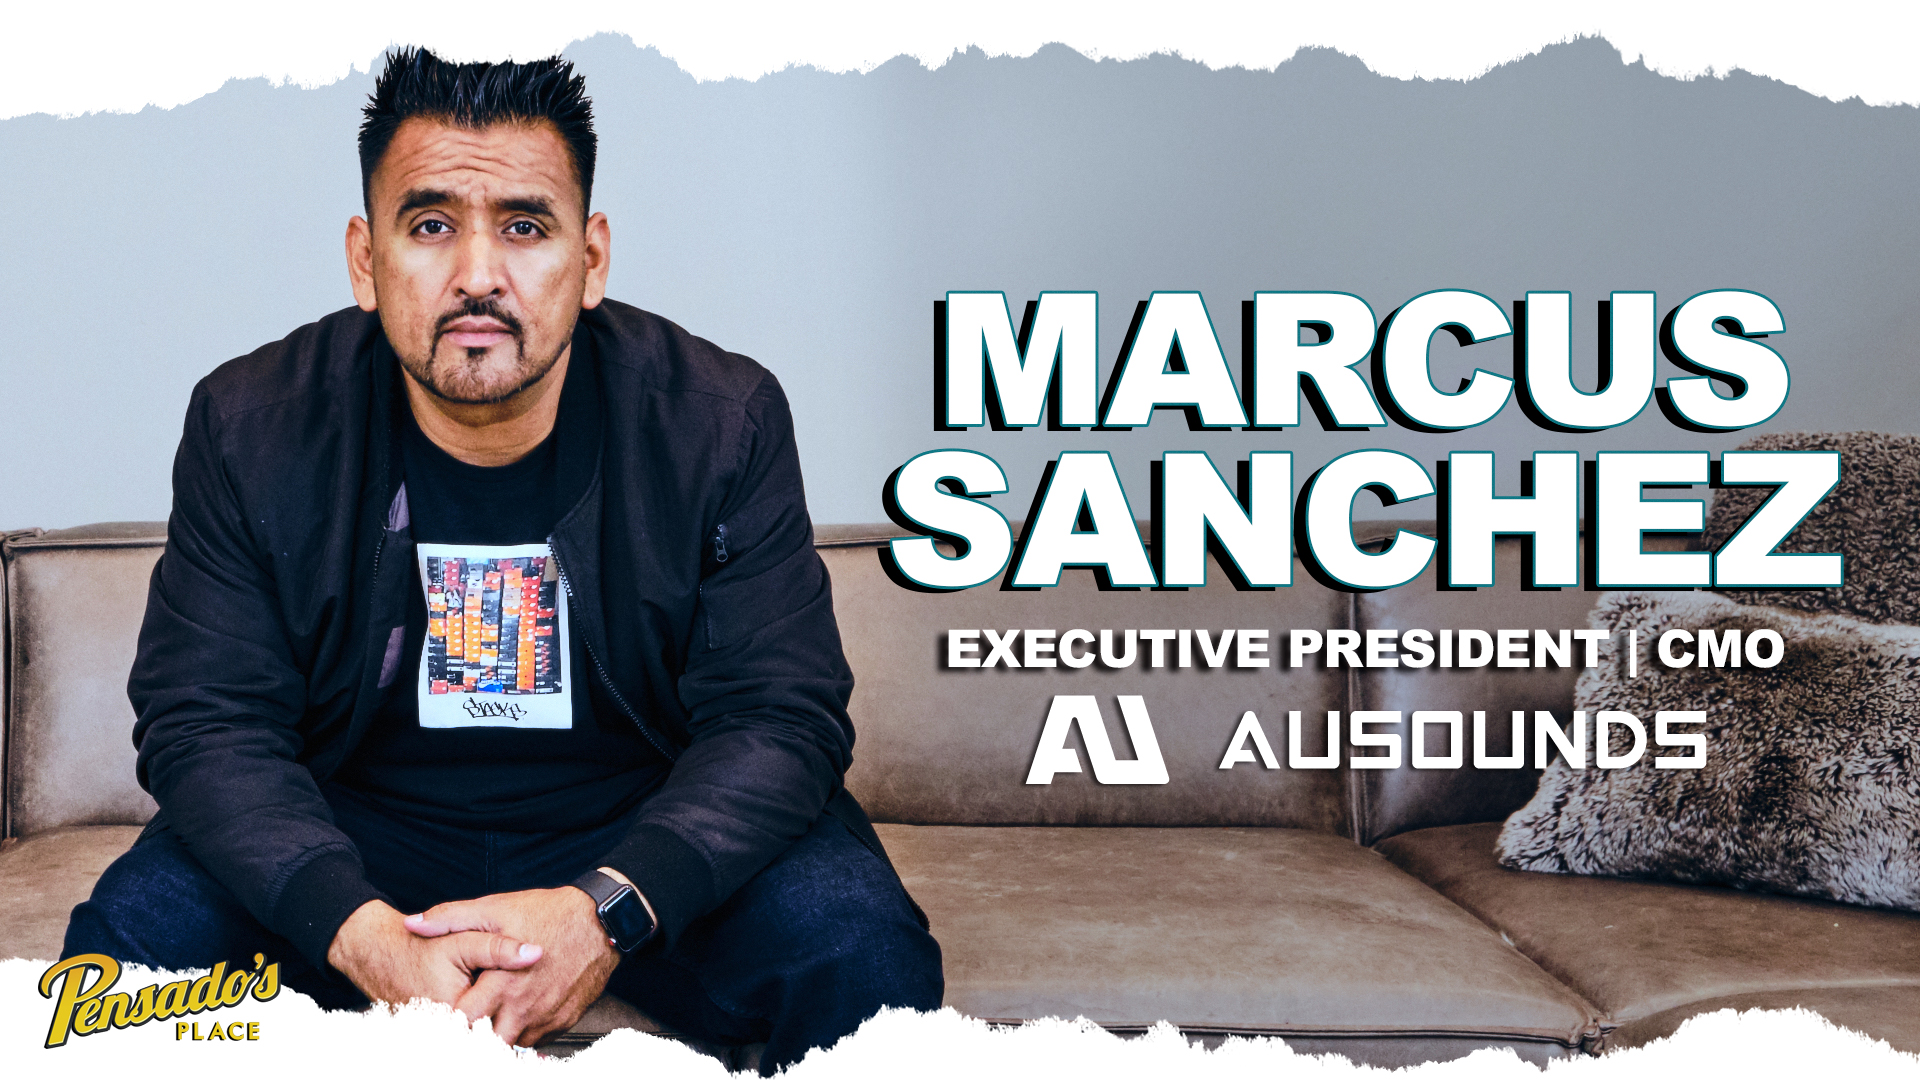 AuSounds Executive President / CMO, Marcus Sanchez